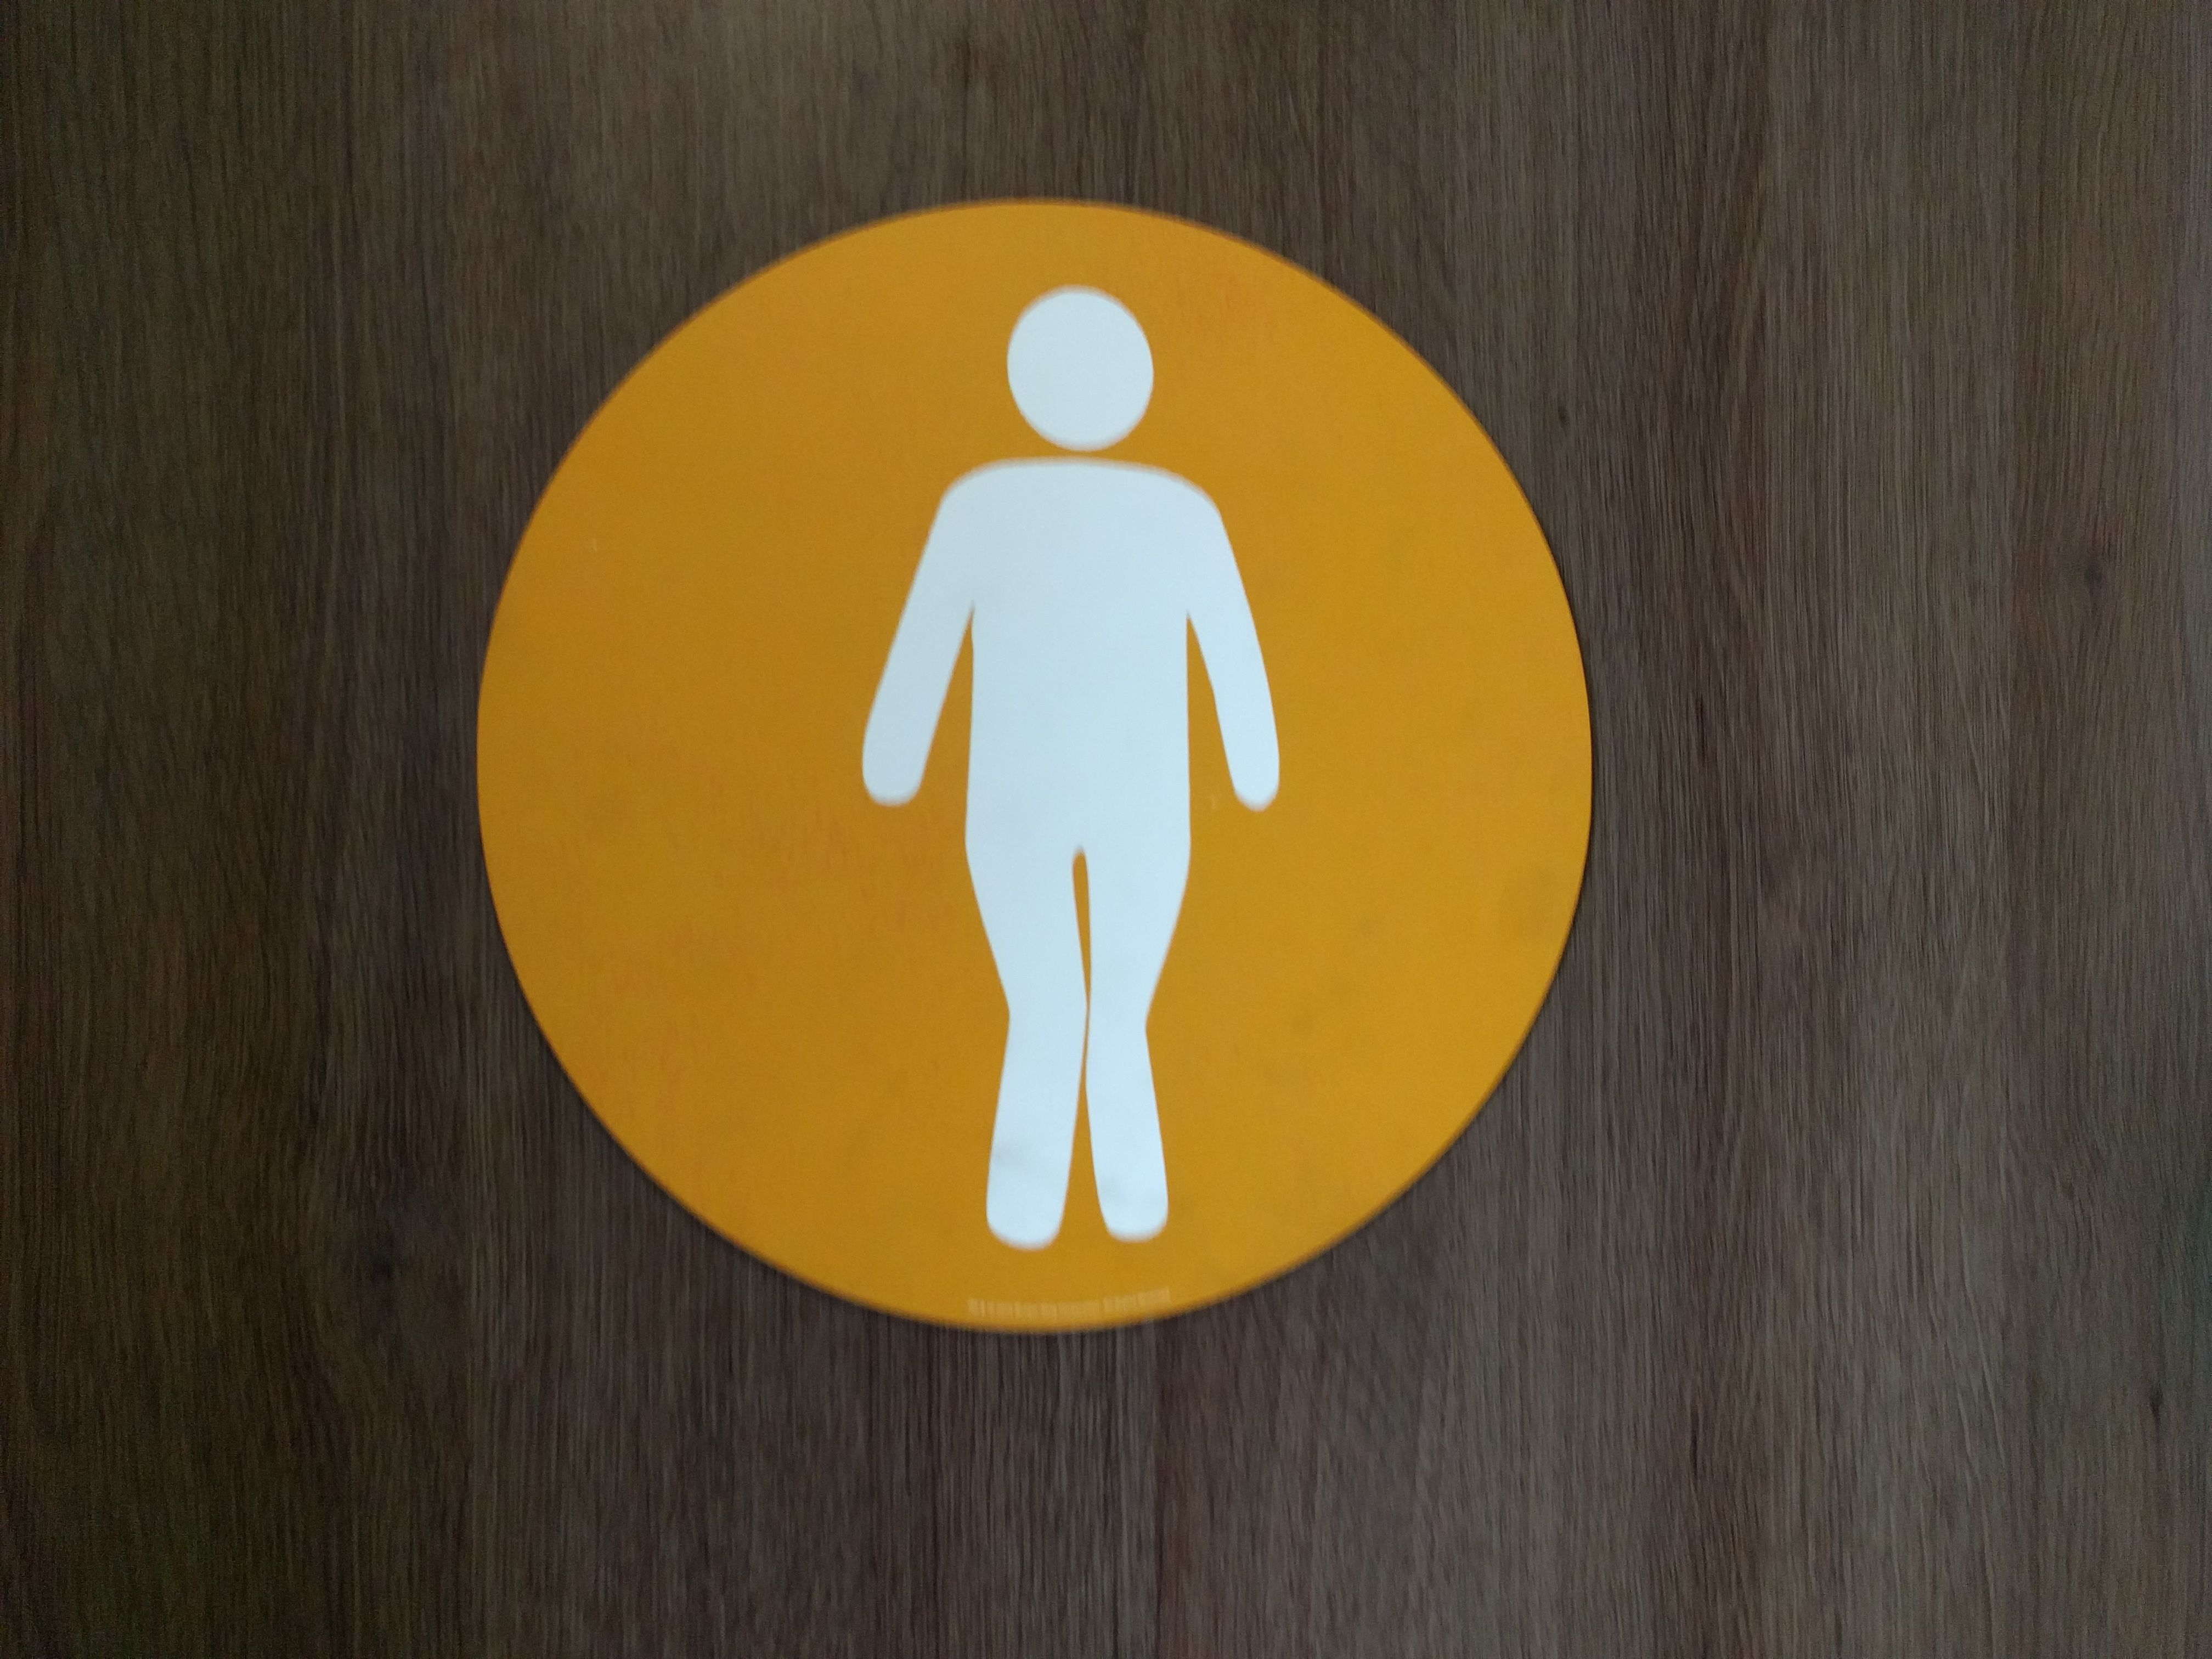 squatting international bathroom women for using s sitting sign uk toilet the a vs in guide students